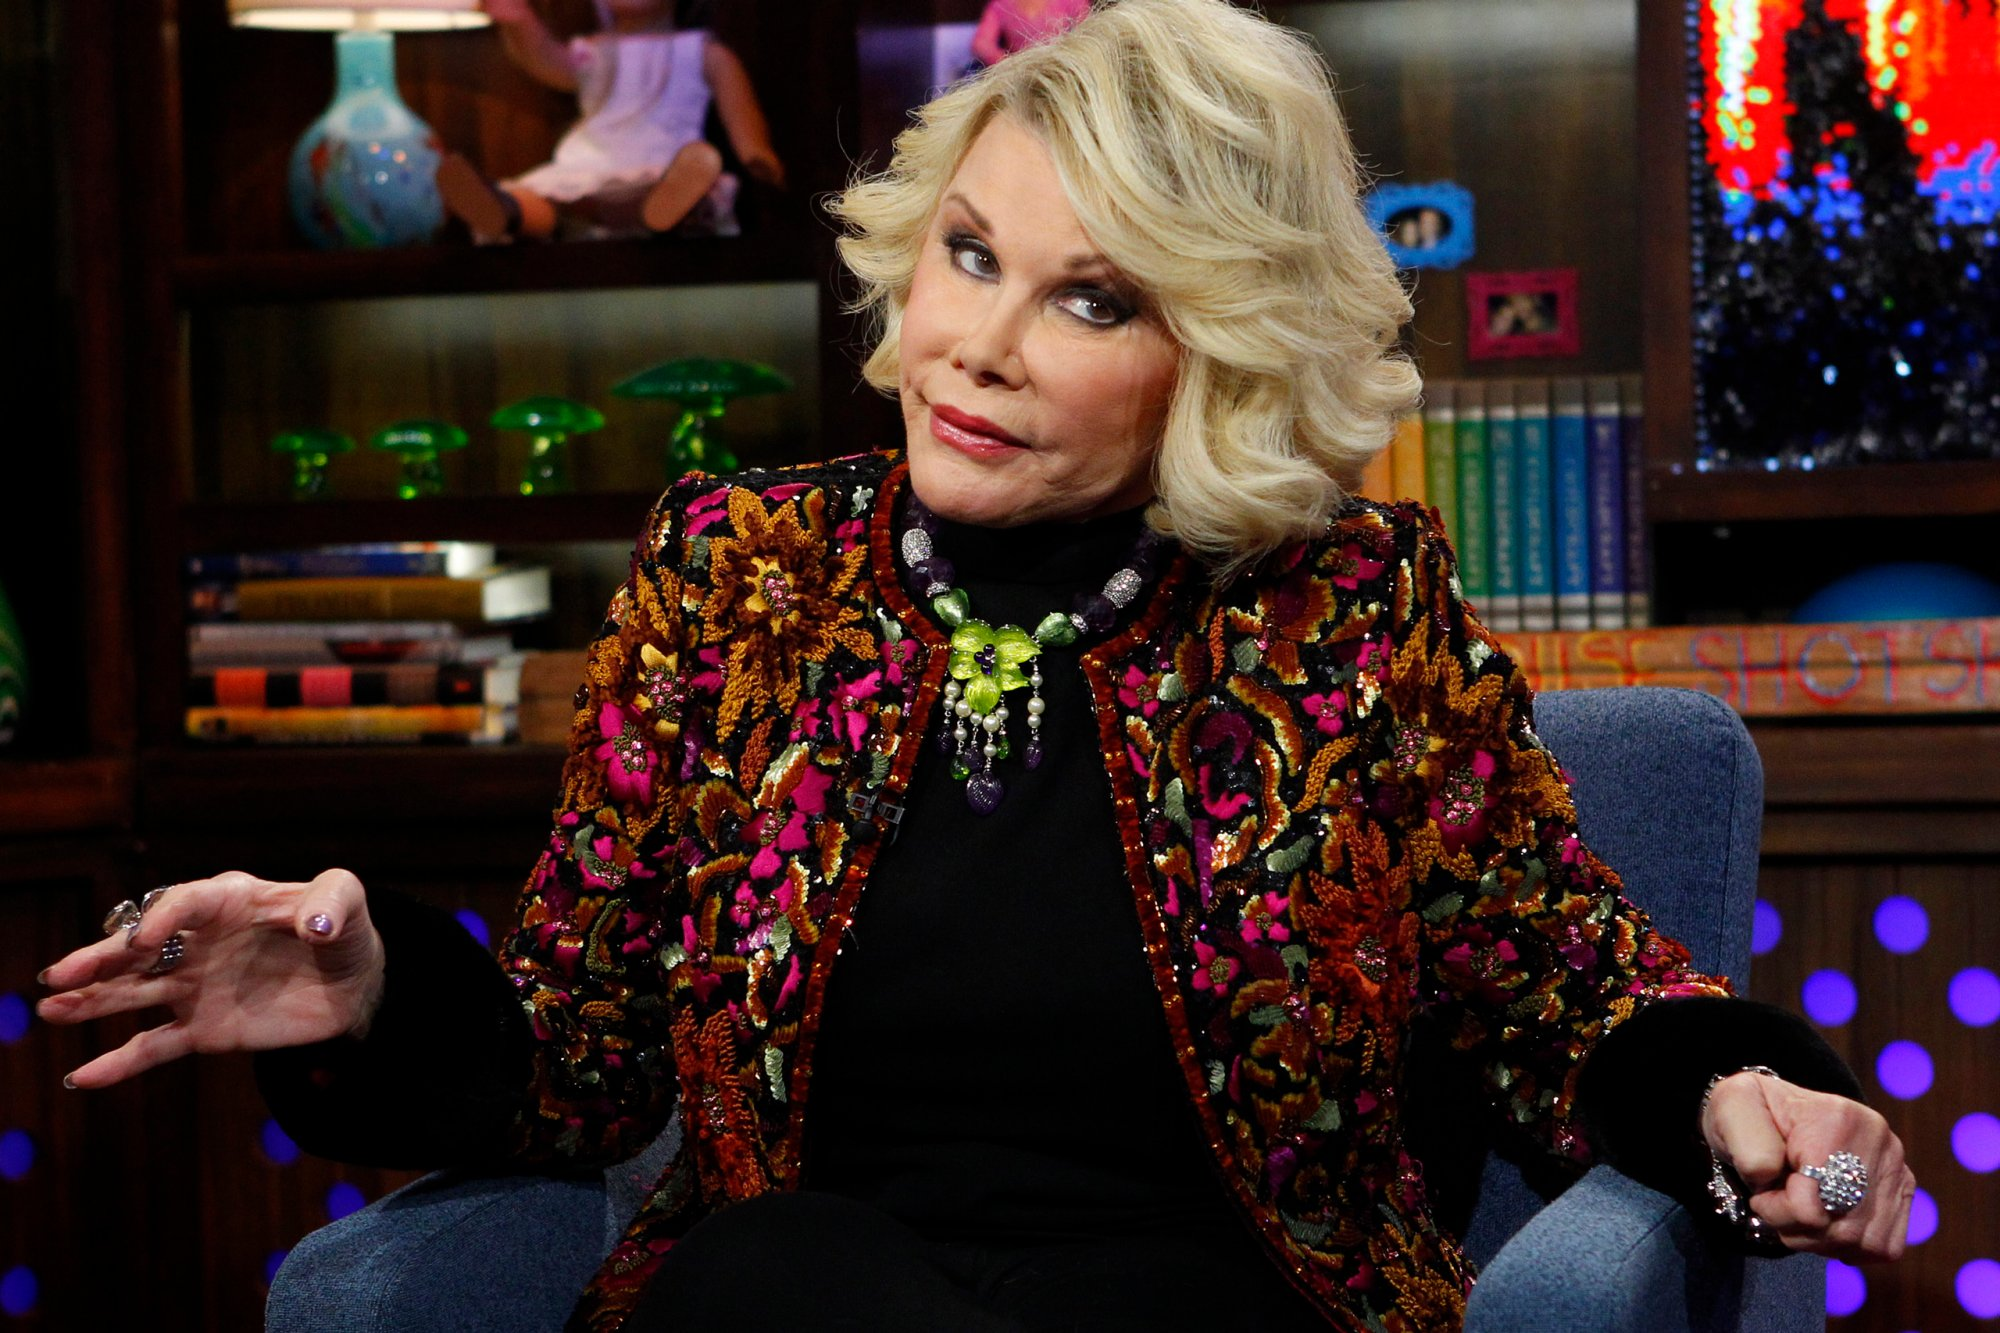 Joan Rivers Fashion Police 2014 of Joan Rivers Fashion